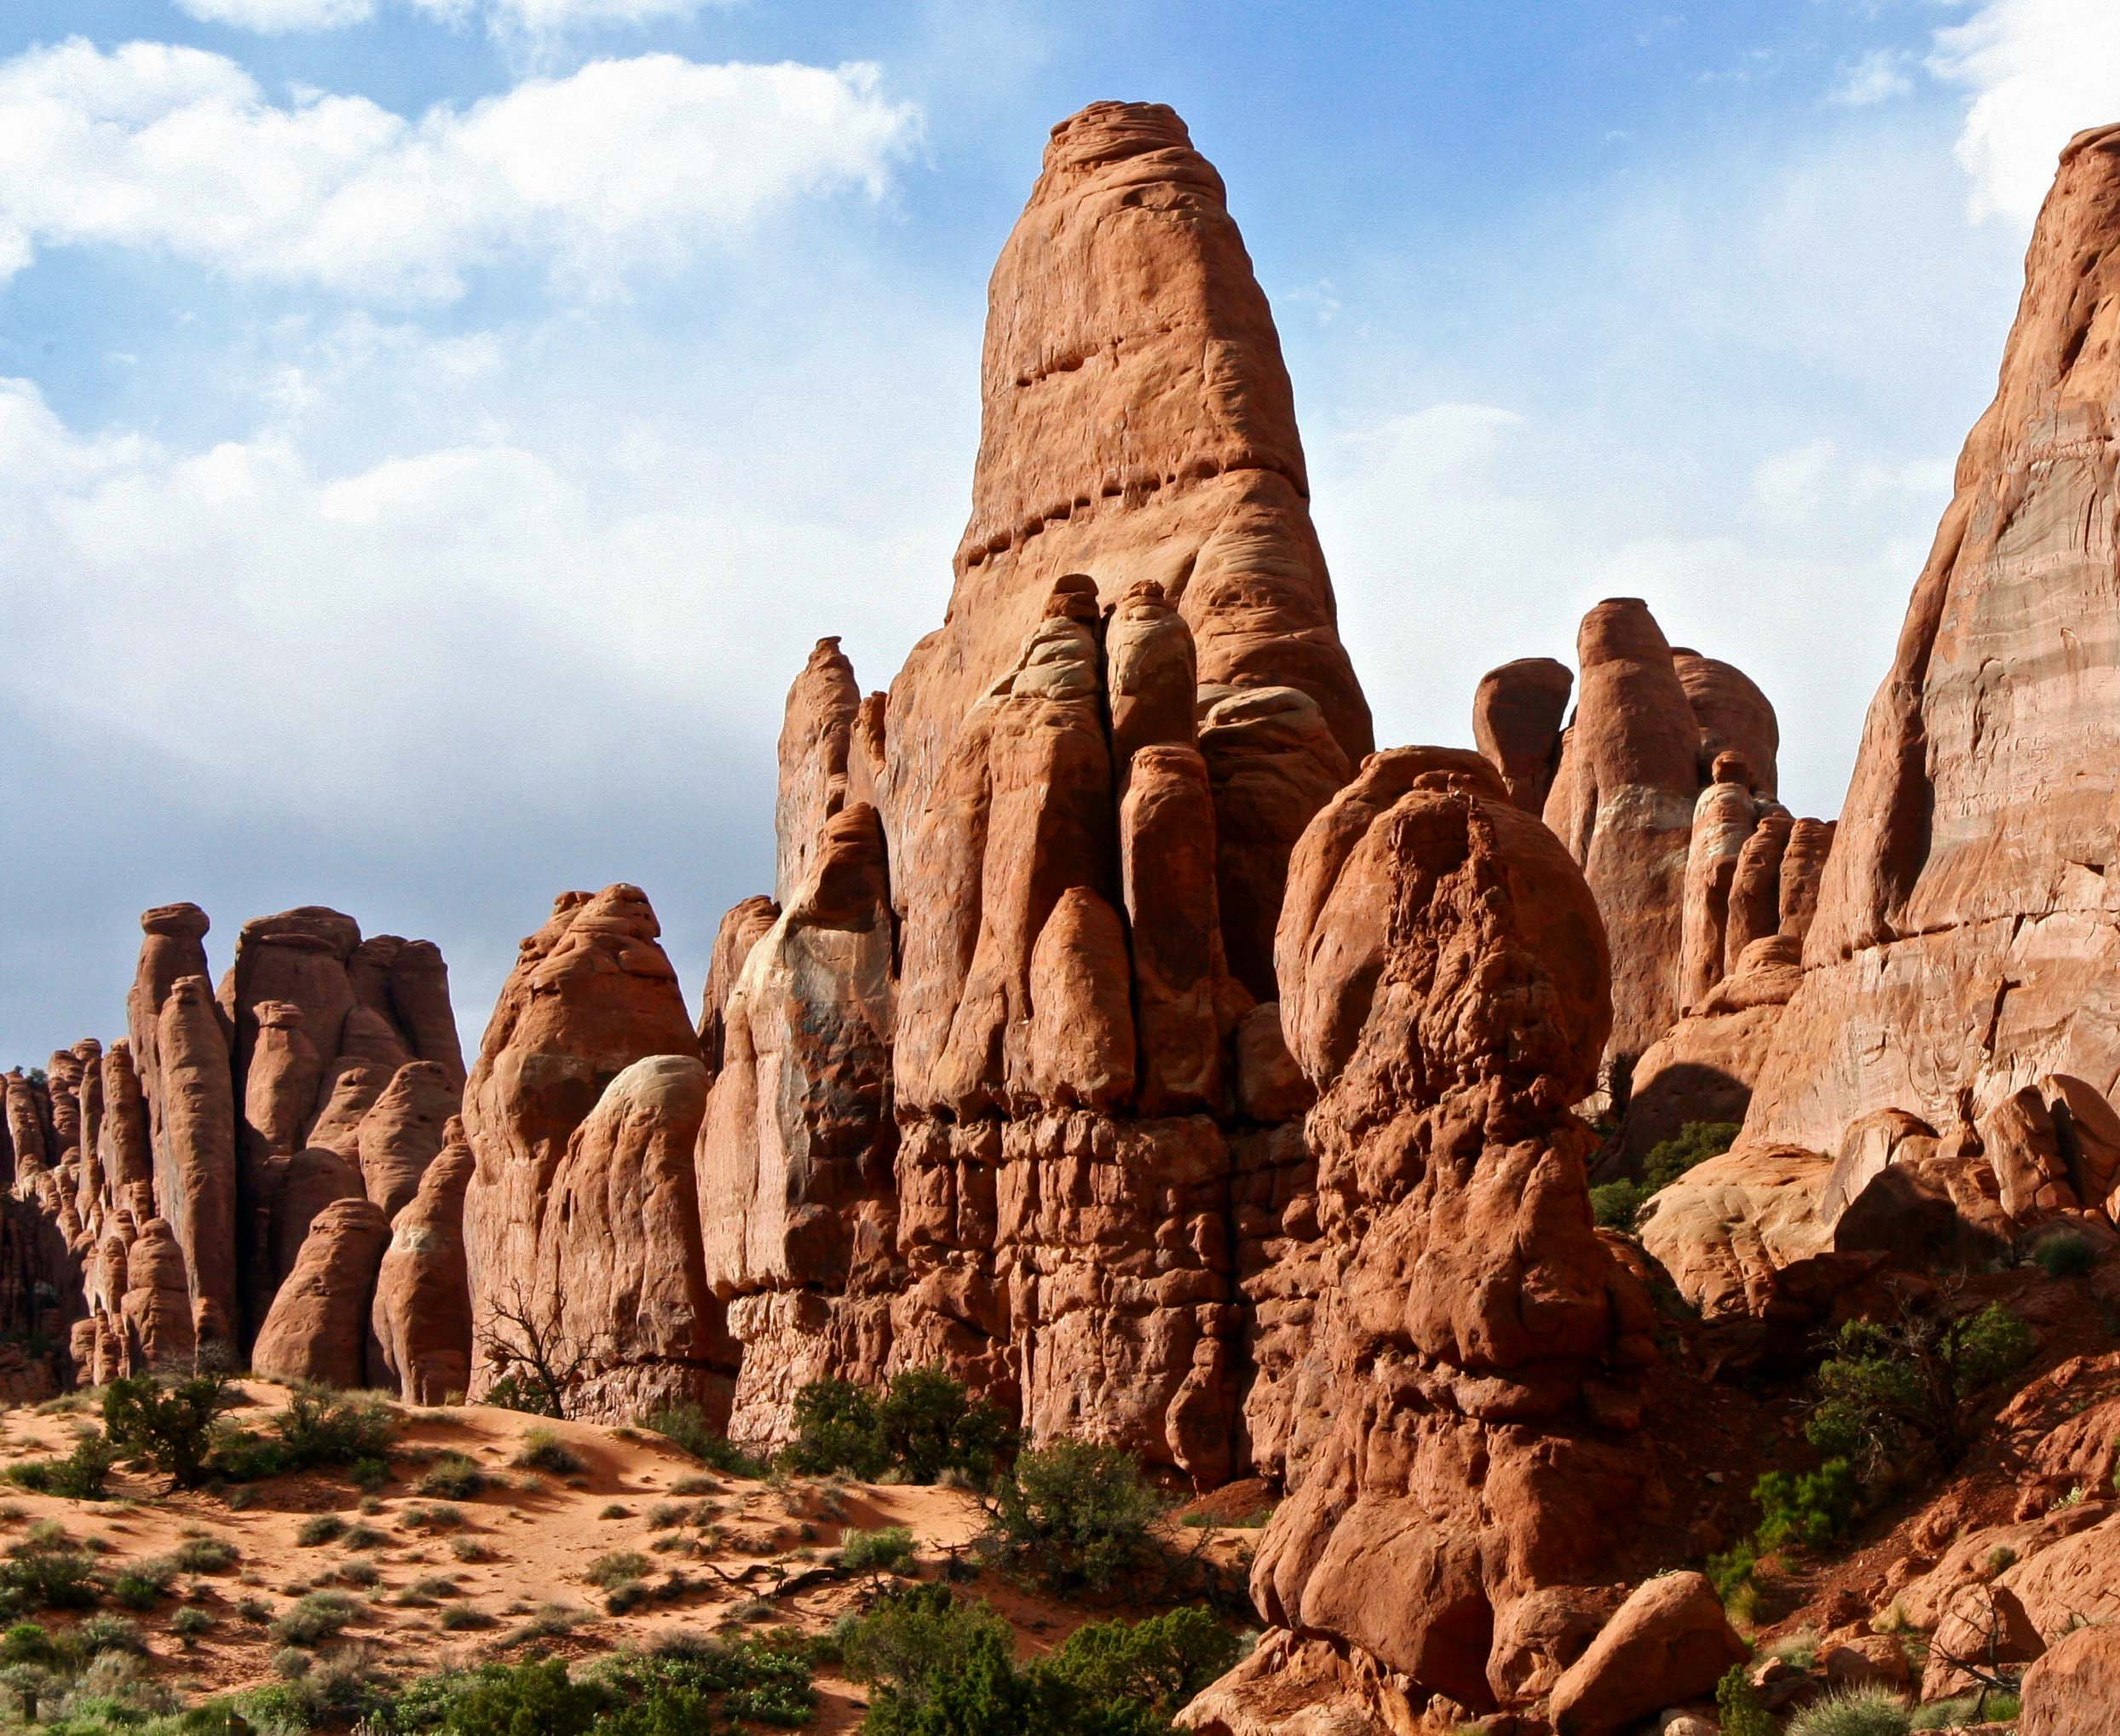 Photos of Arches National Park by Curt and Peggy Mekemson.